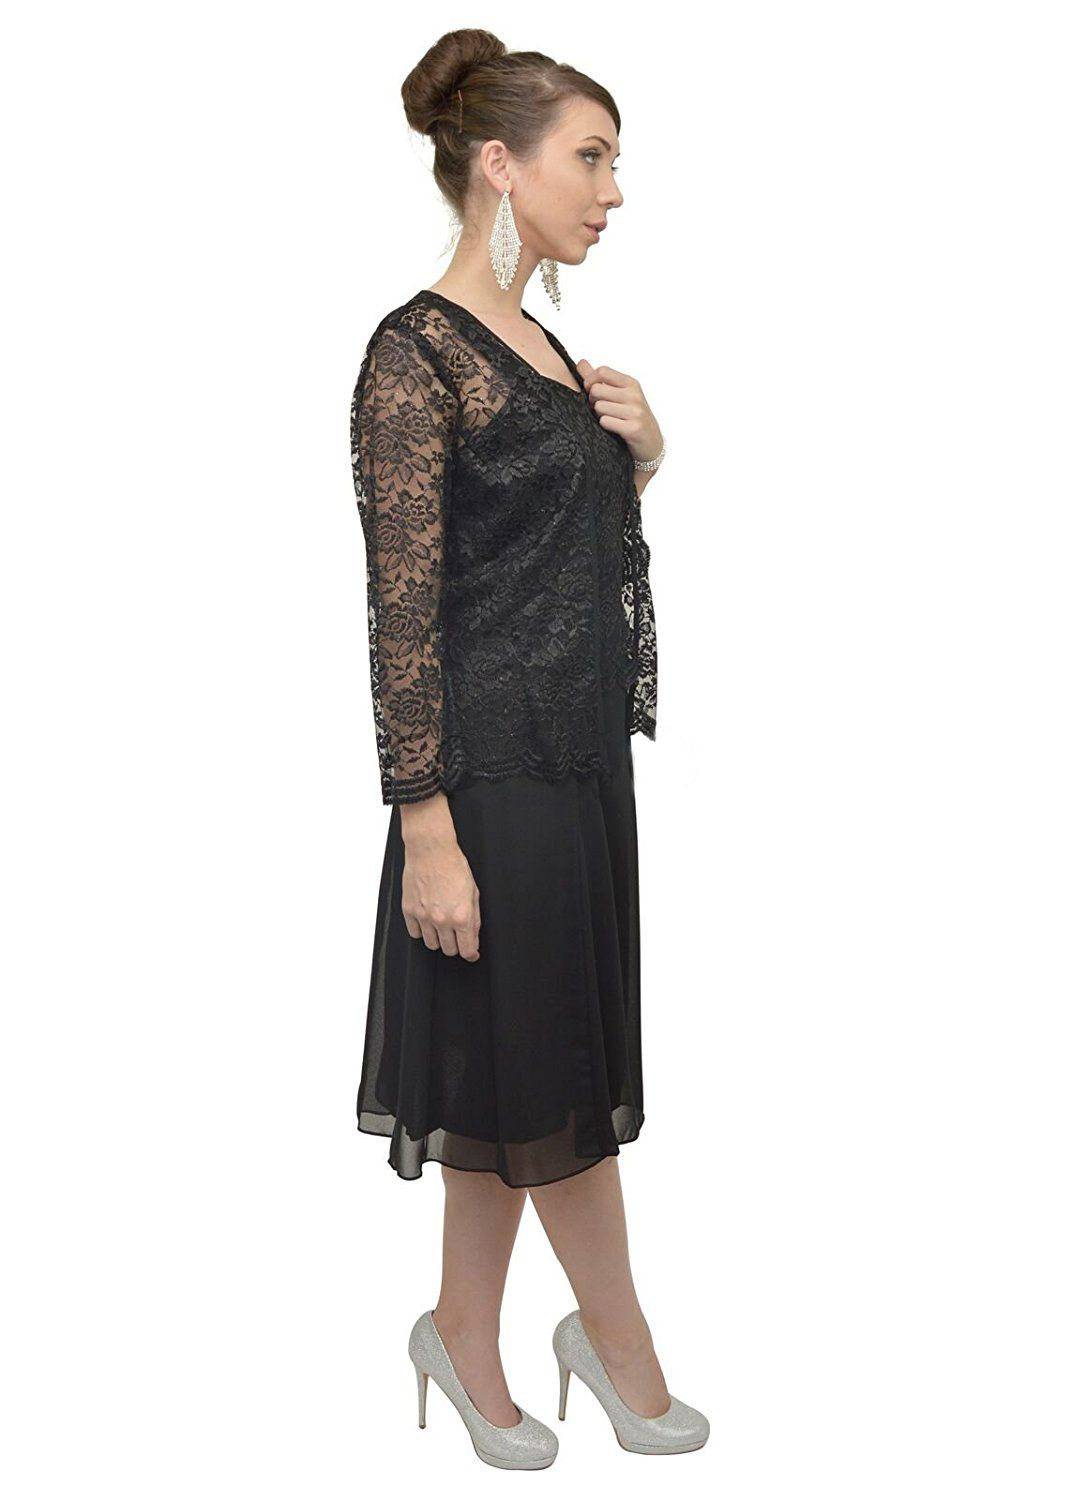 144731a5099 The Dress Outlet Short Mother of the Bride Church Dress with Jacket at  Amazon Women s Clothing store